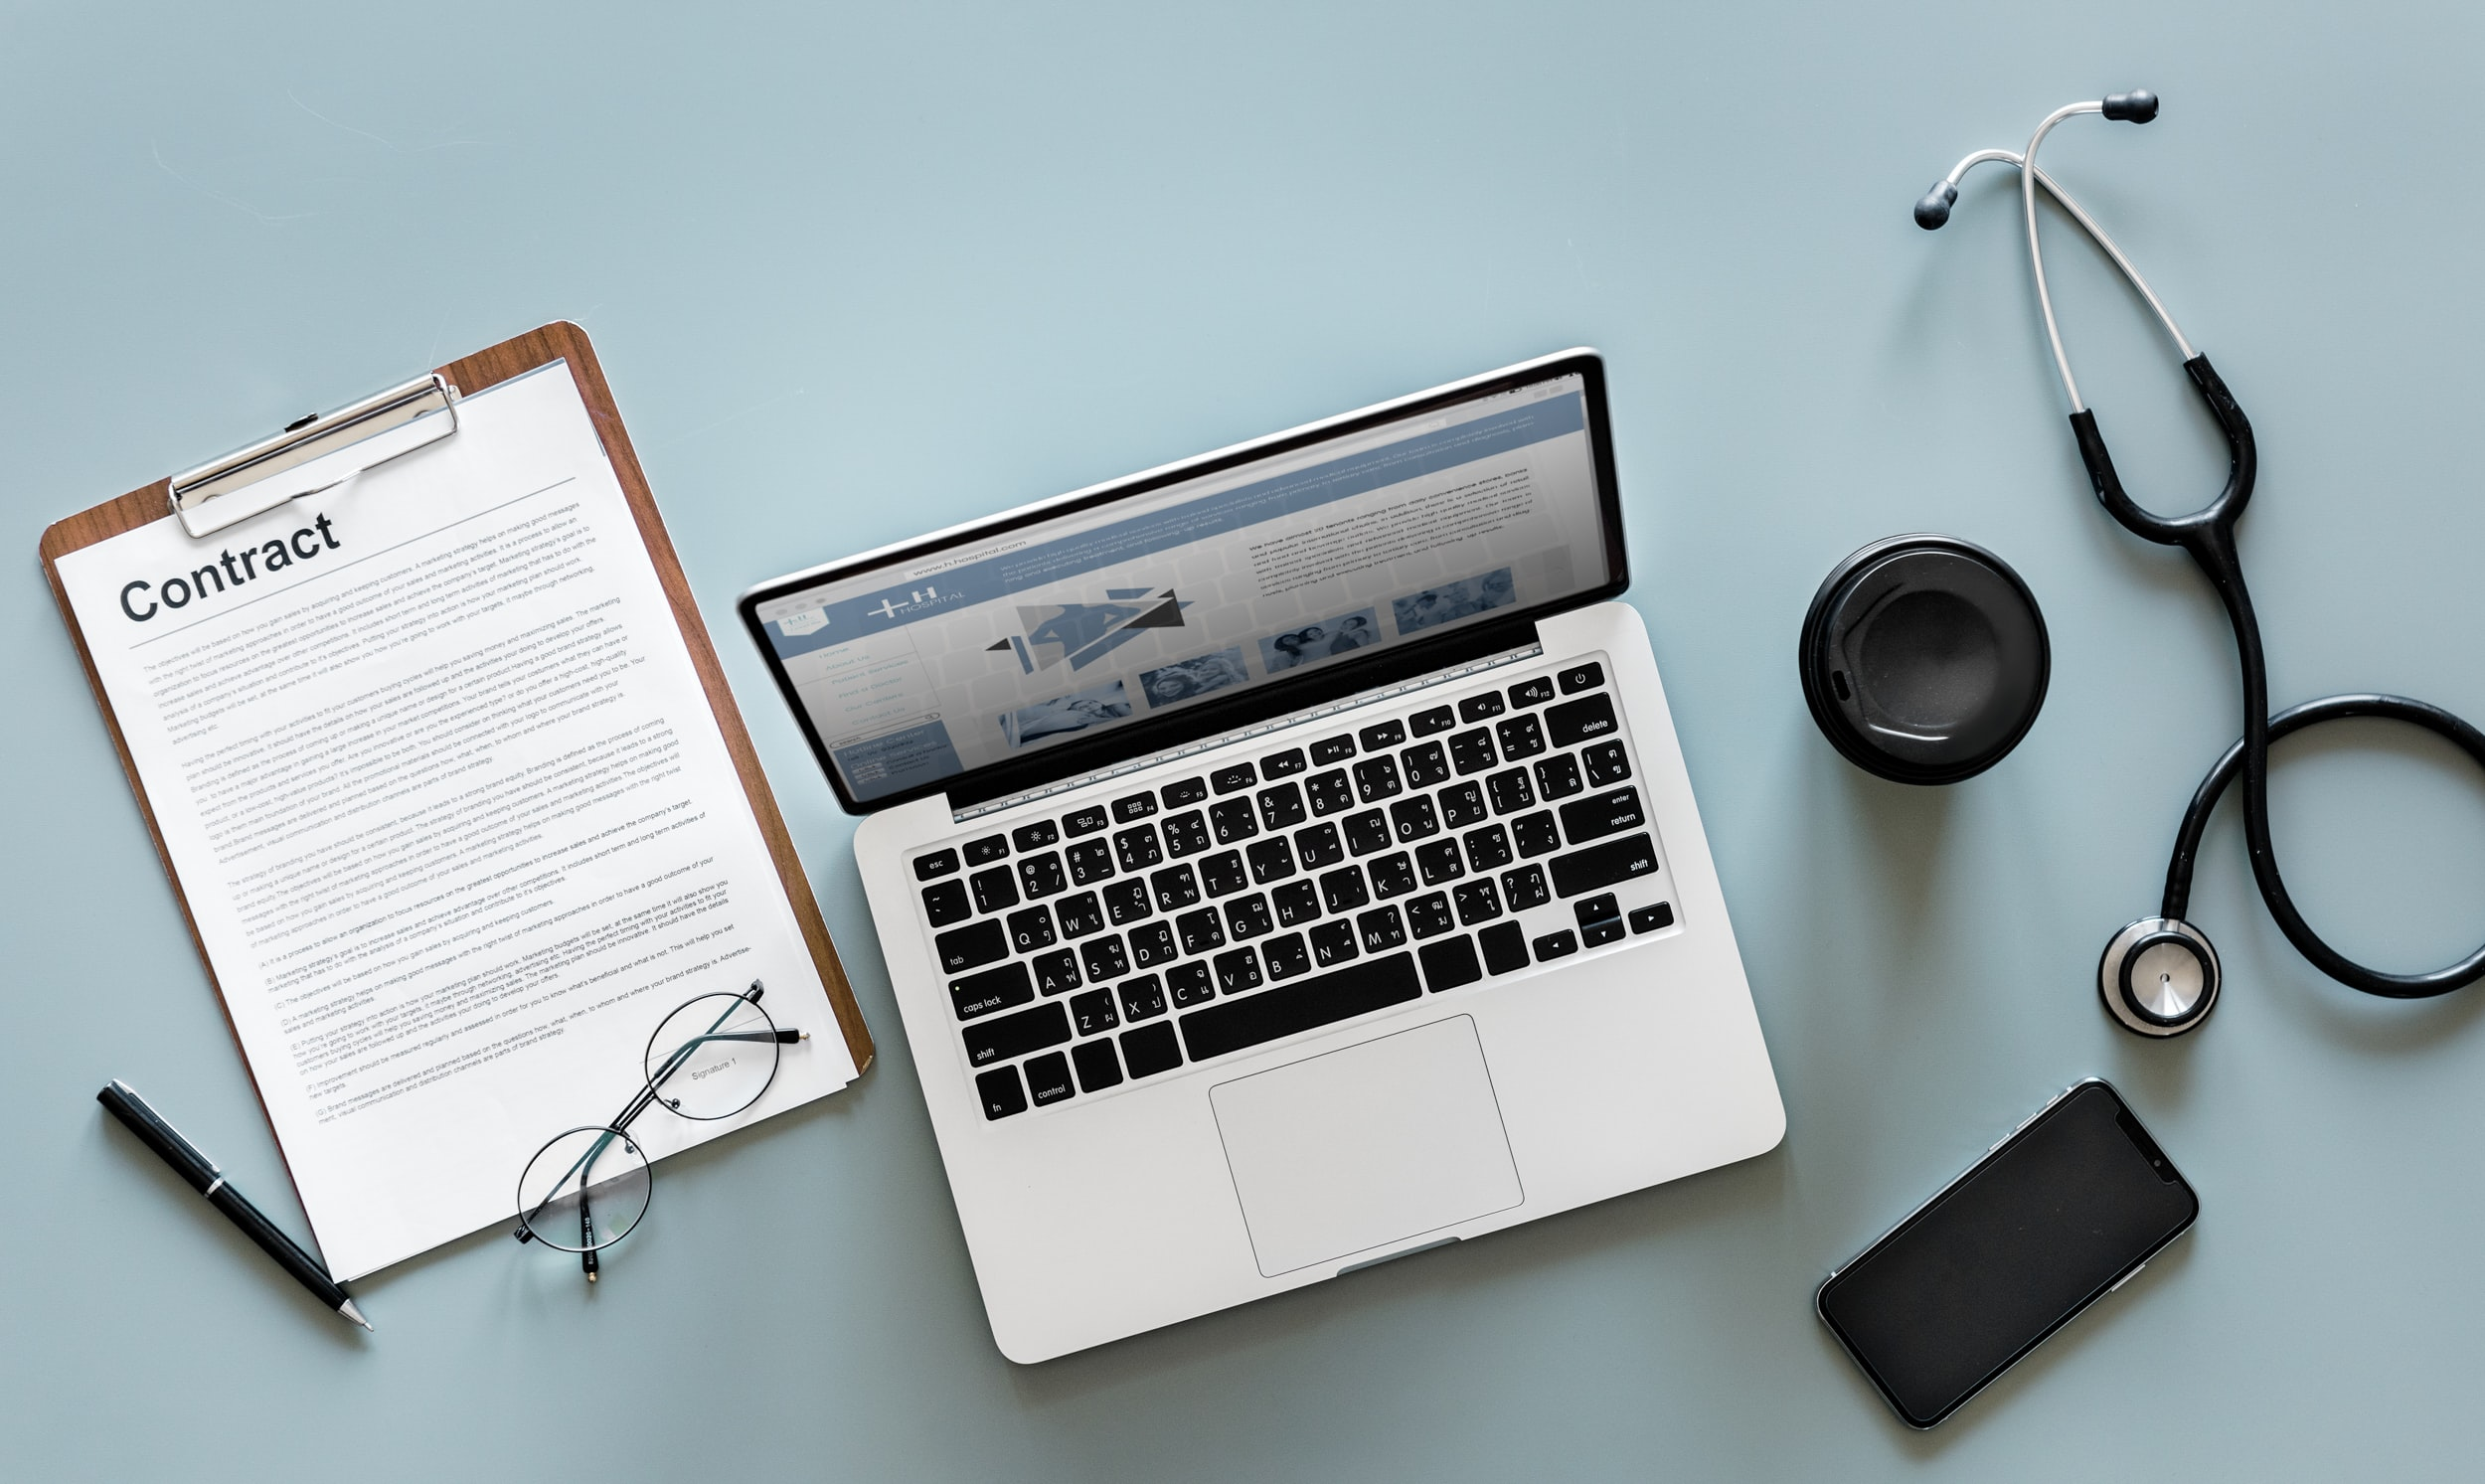 MacBook Pro near black stethoscope and brown clipboard